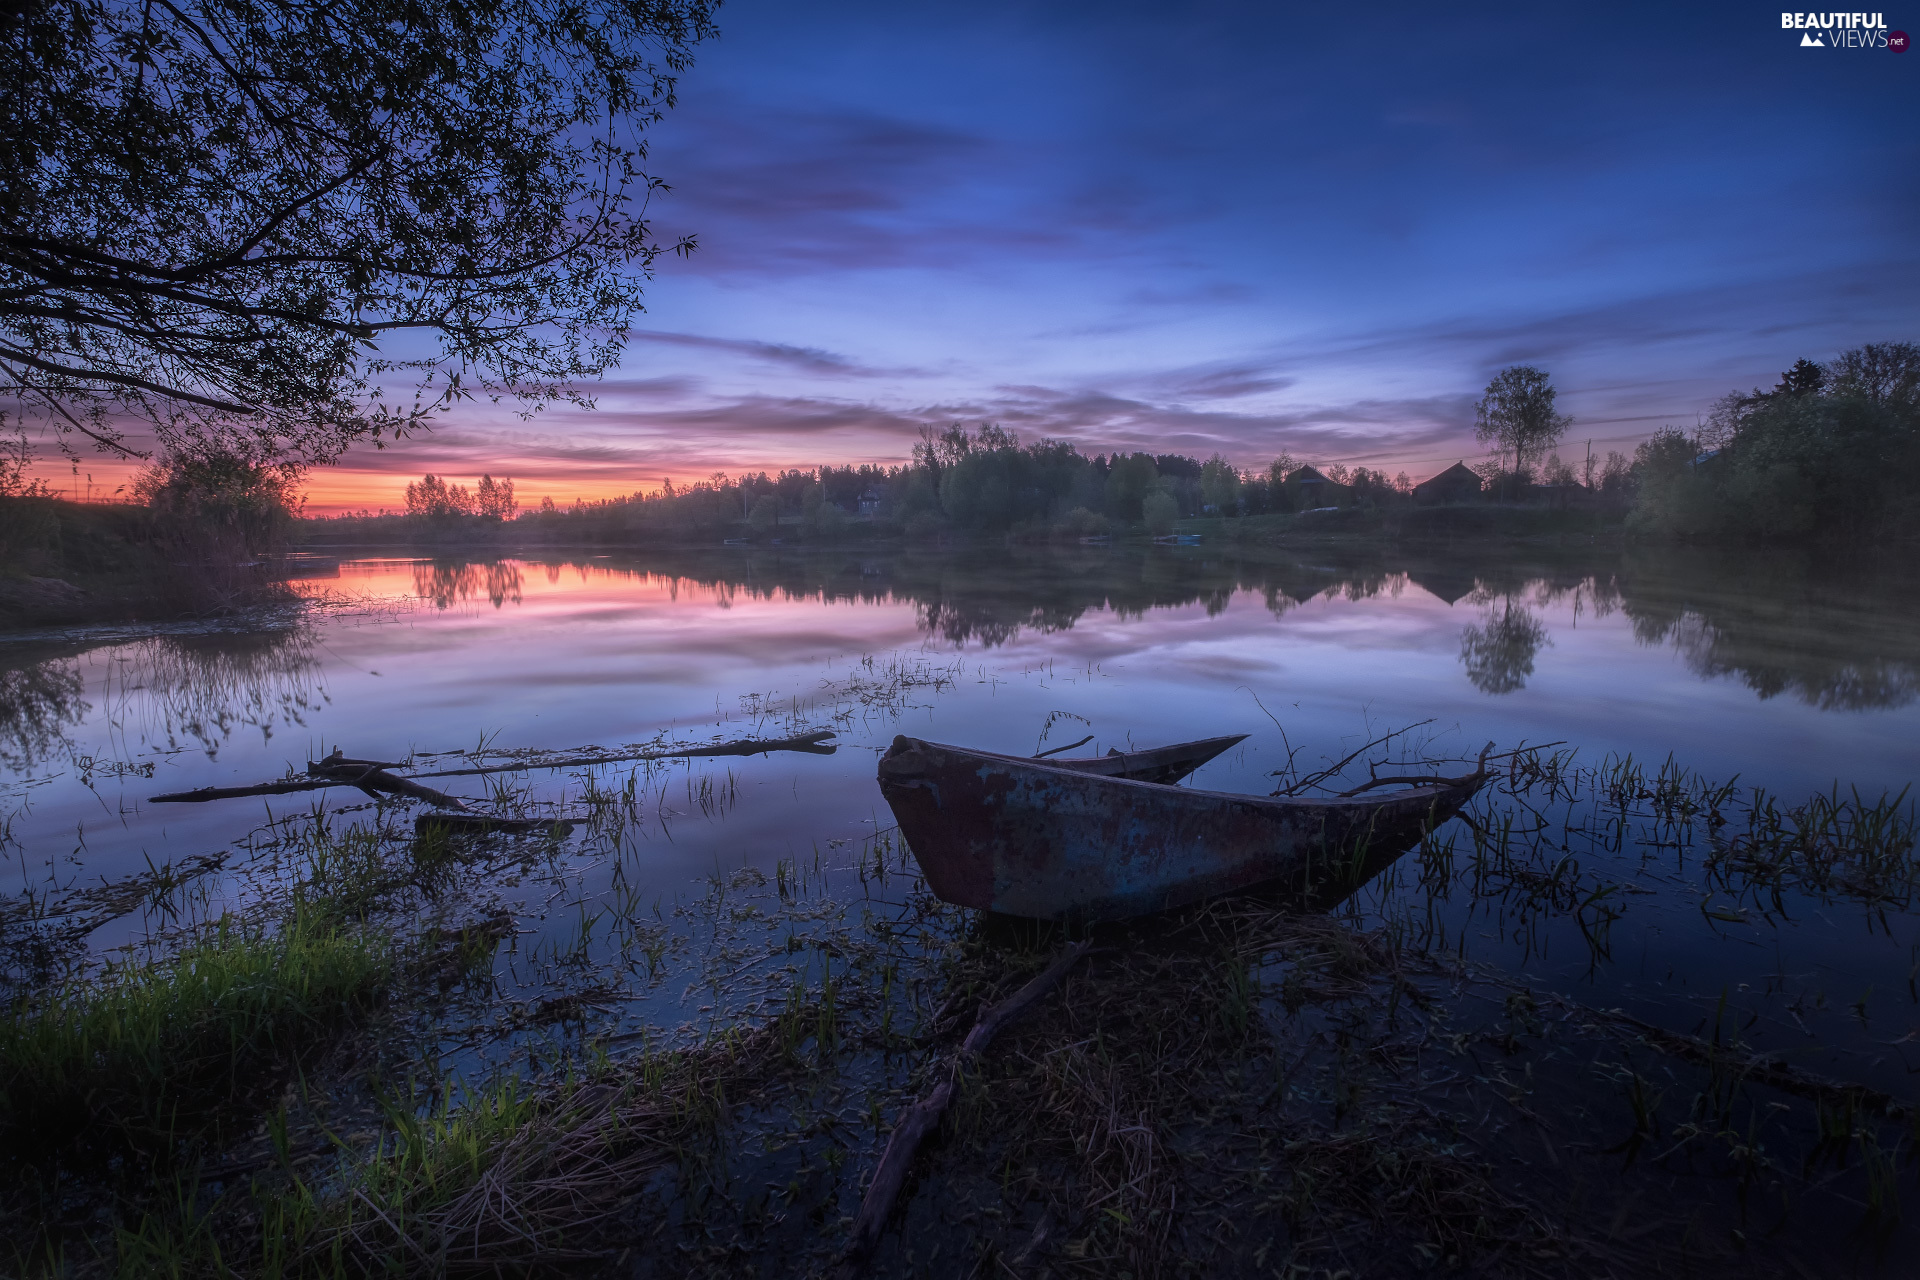 Boat, Dubna River, evening, Sky, Latgale, Latvia, trees, viewes, clouds